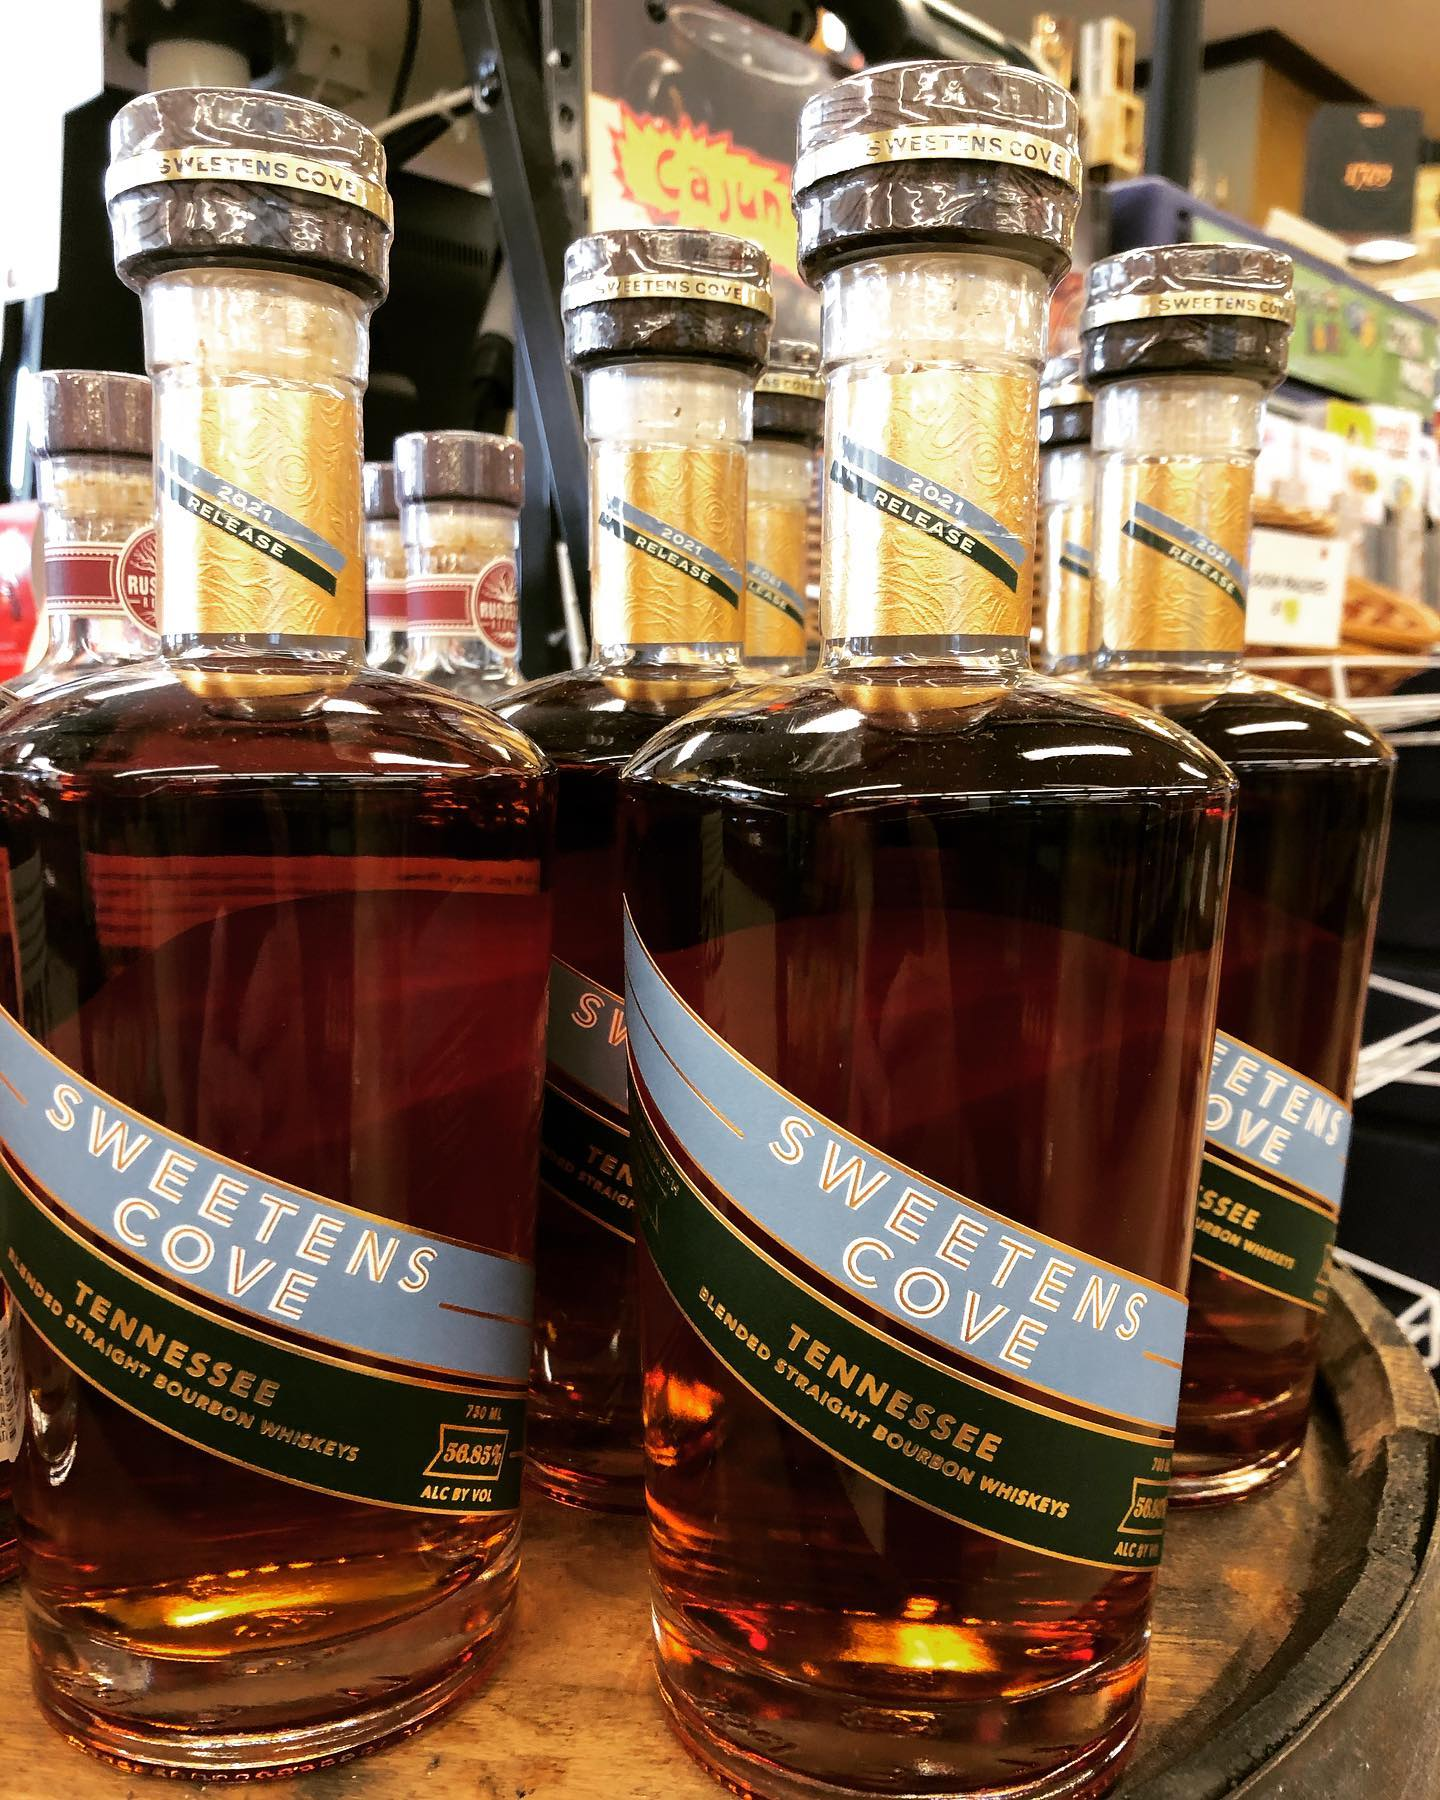 @sweetenscovespirits Tennessee Bourbon is now in stock at our Perkins Rd location! This 113 proofer